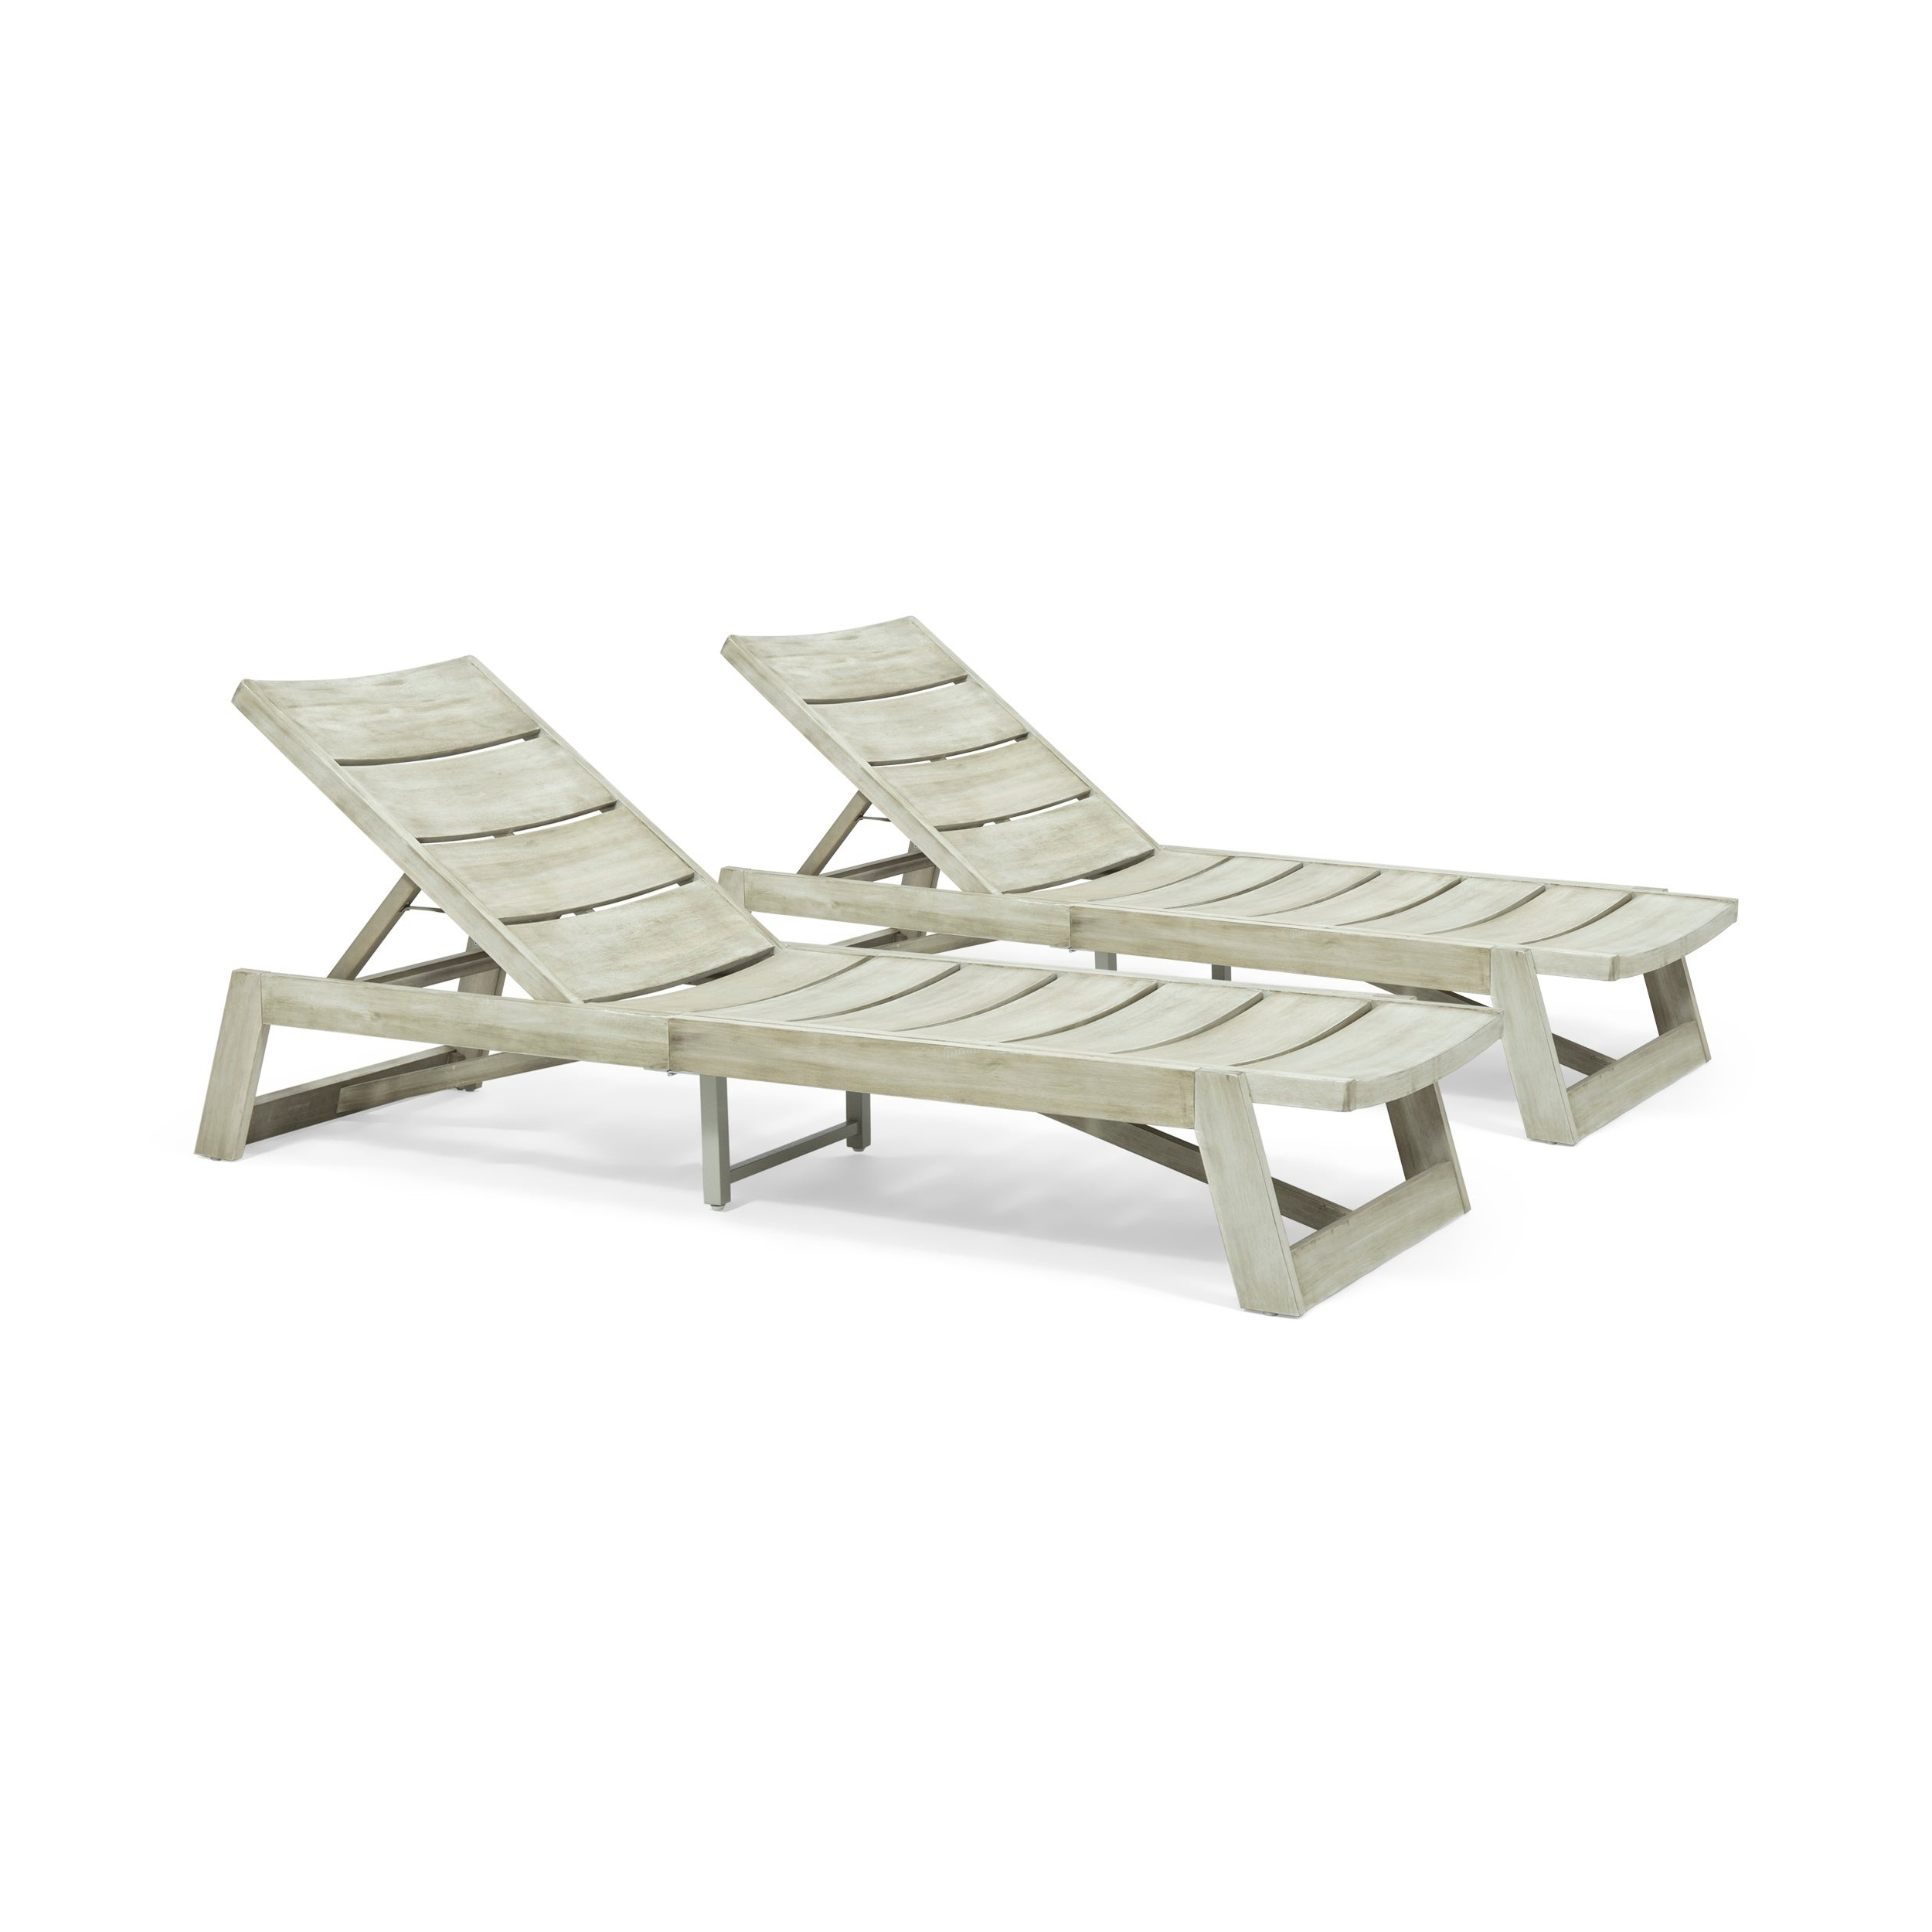 Famous Maki Outdoor Wood And Iron Chaise Lounges (Set Of 2)Christopher Knight Home For Maki Outdoor Wood Chaise Lounges (View 8 of 25)